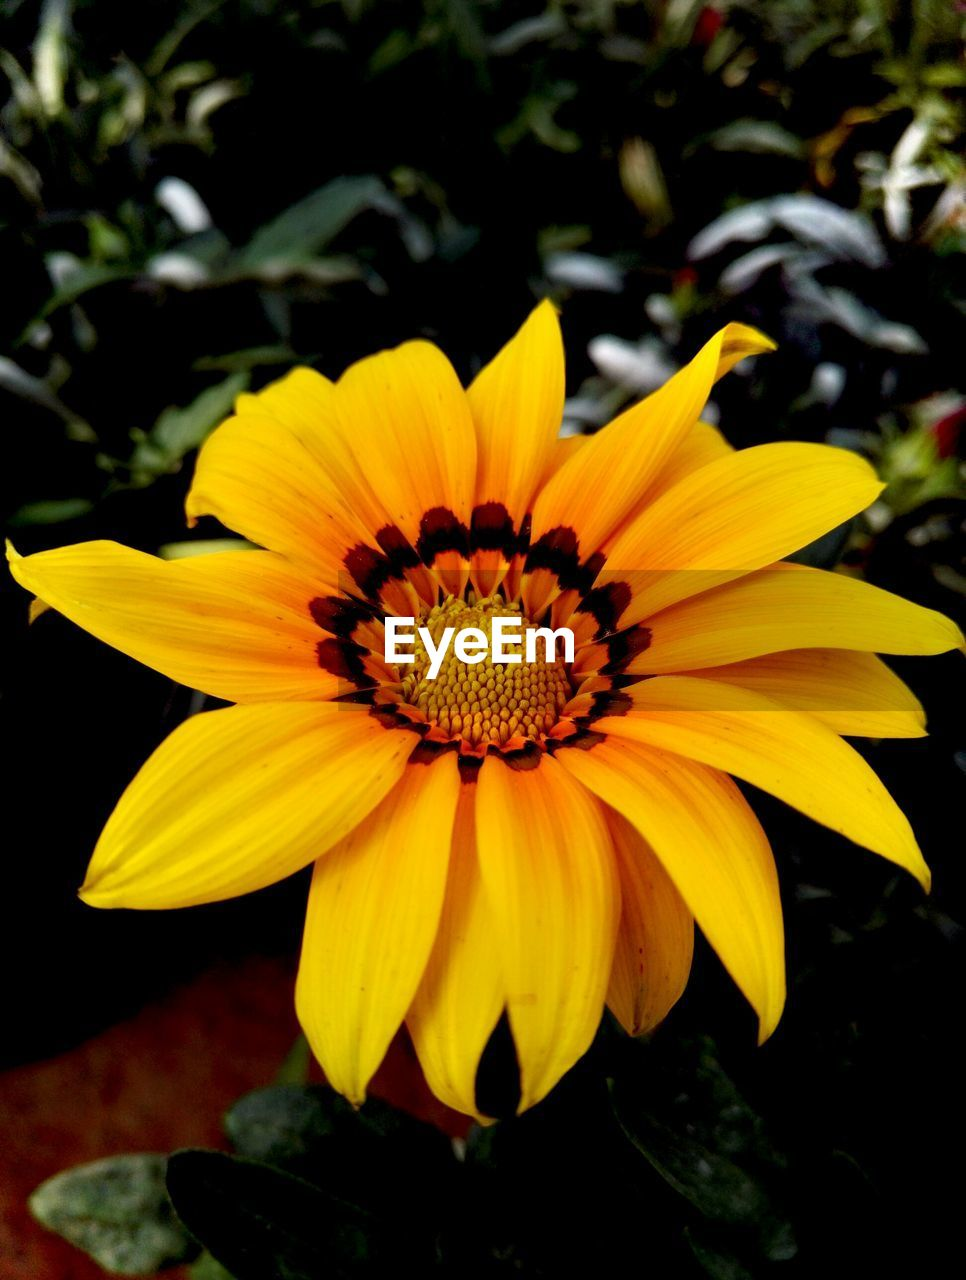 flower, yellow, petal, fragility, beauty in nature, nature, flower head, growth, freshness, plant, no people, gazania, outdoors, close-up, day, blooming